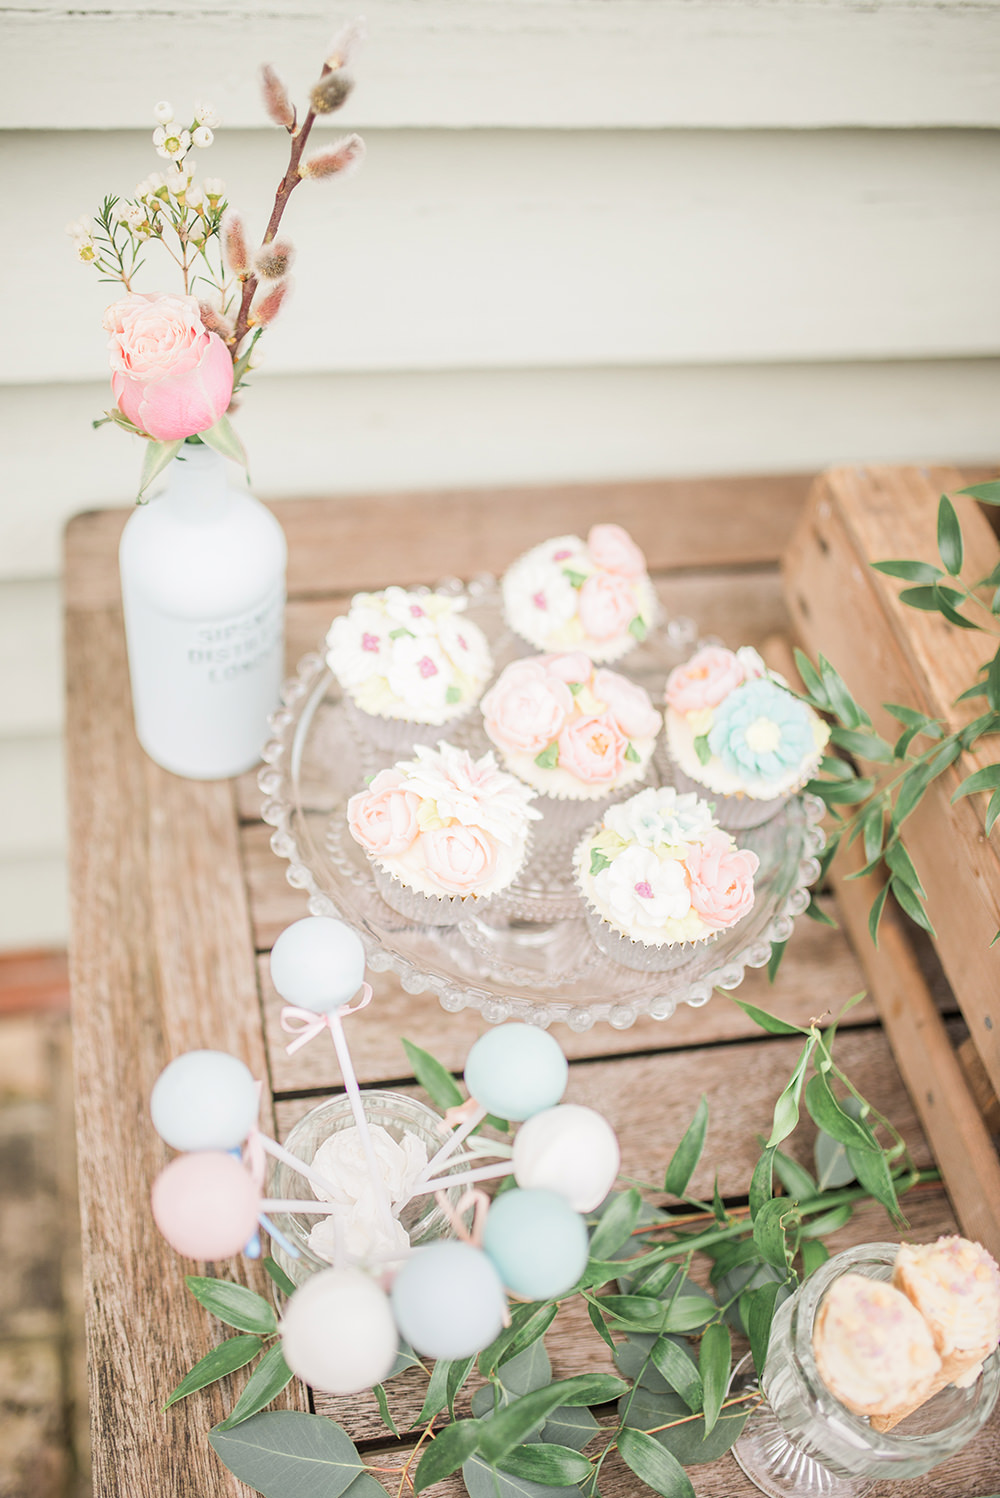 Cake Pops Springtime Bridal Shower Ideas Hen Party Laura Jane Photography